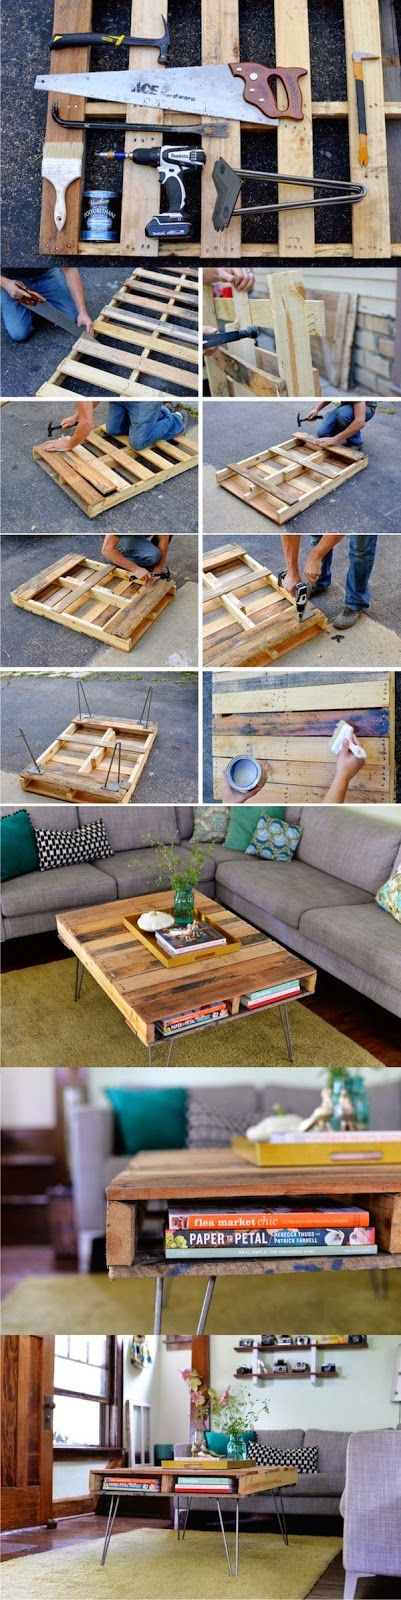 Pallet Project - Coffee Table Made From Pallets